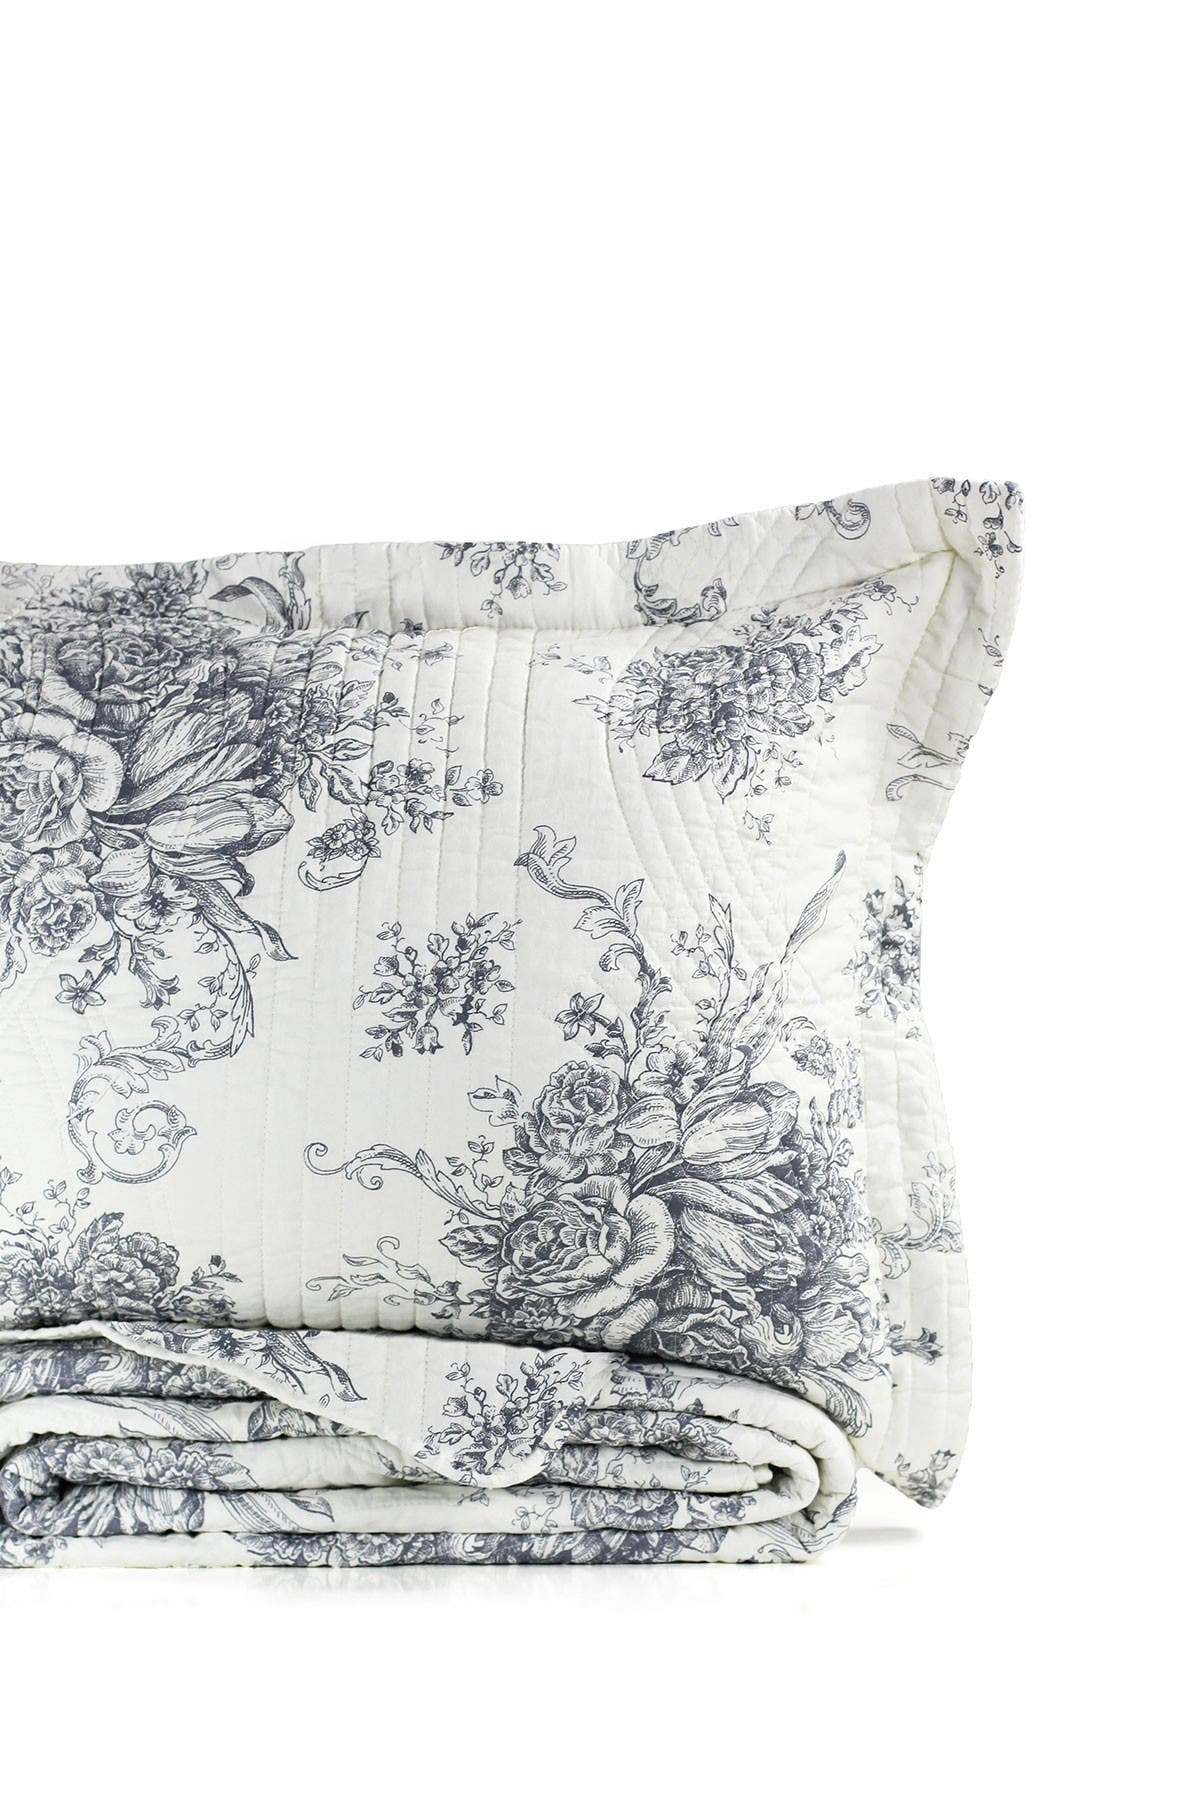 Image of Melange Home Toile Cotton Quilt 3-Piece Set - Full/Queen